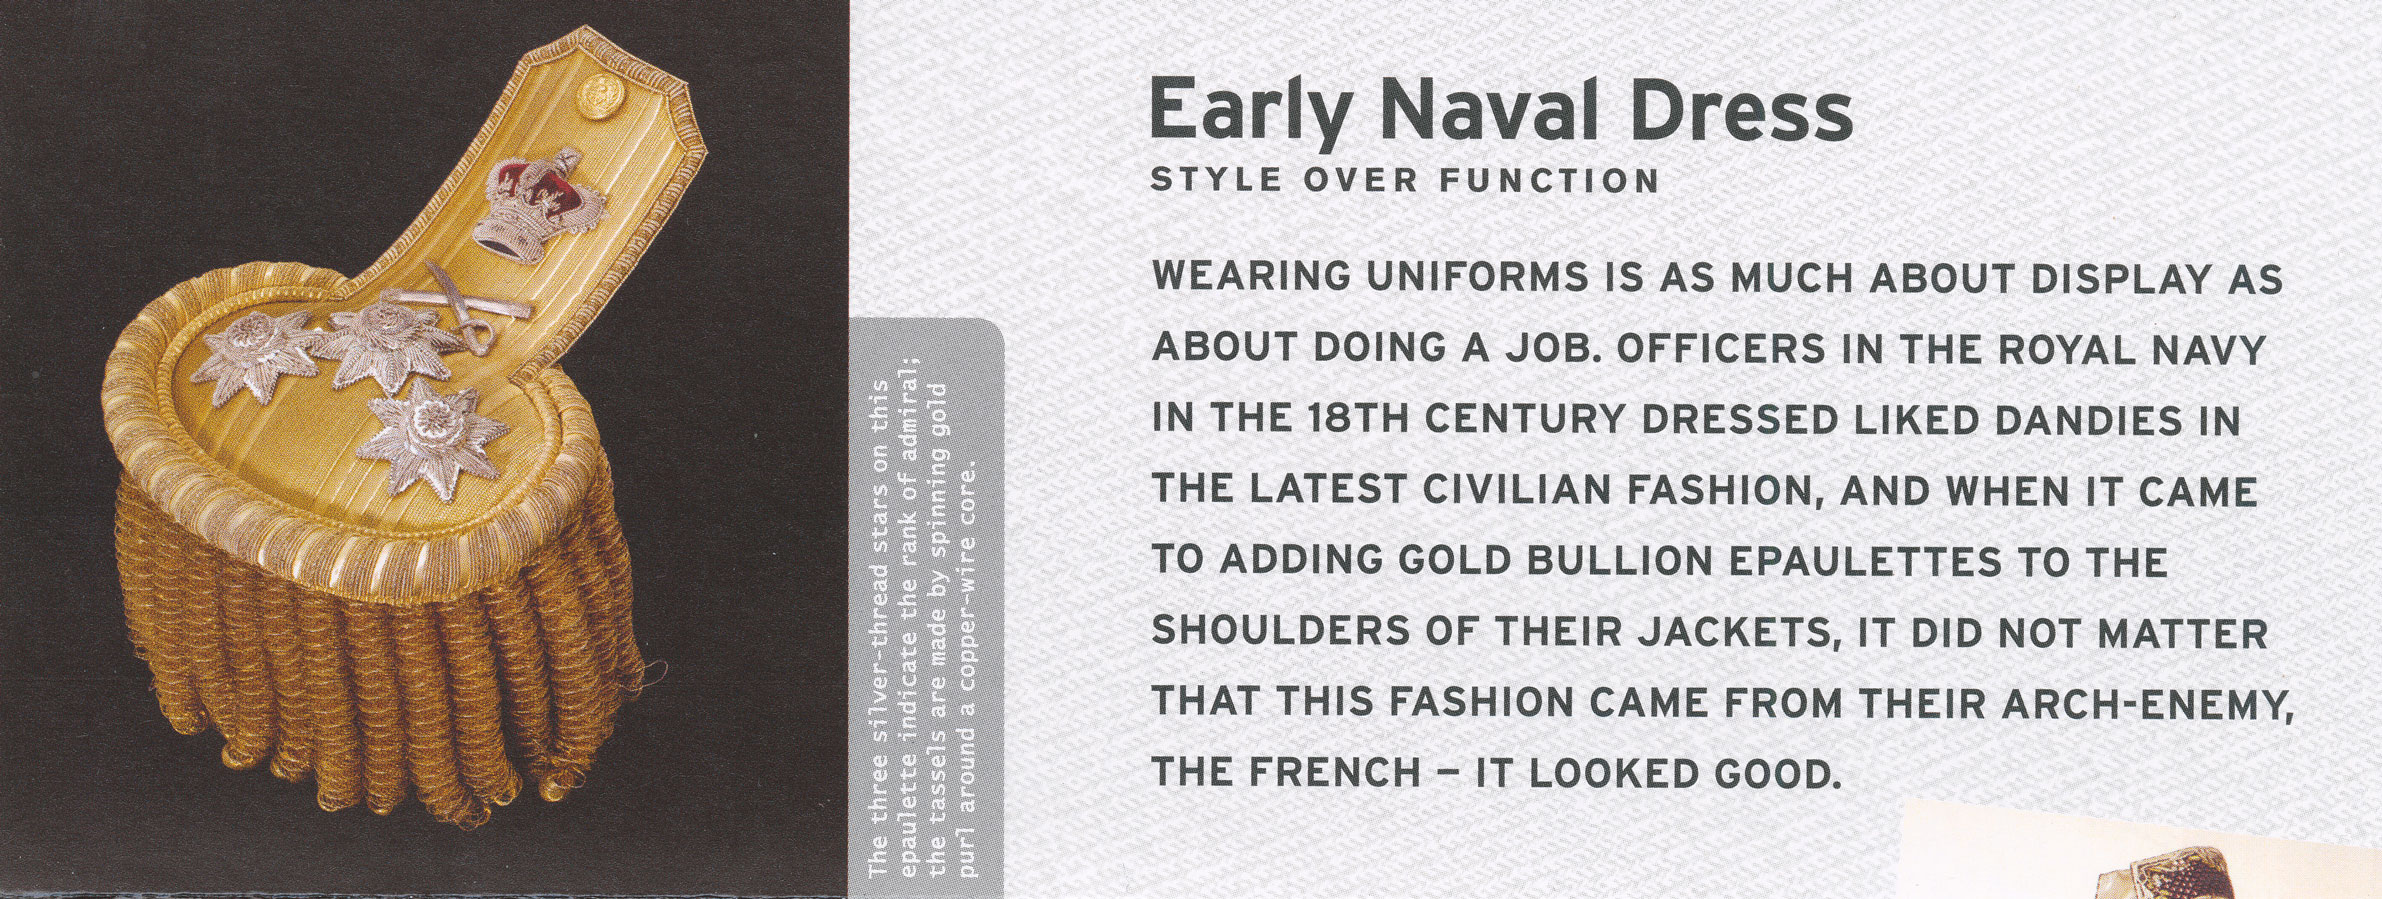 Printed image of an Admiral's epaulettes and information found within the issues Presentation Pack.